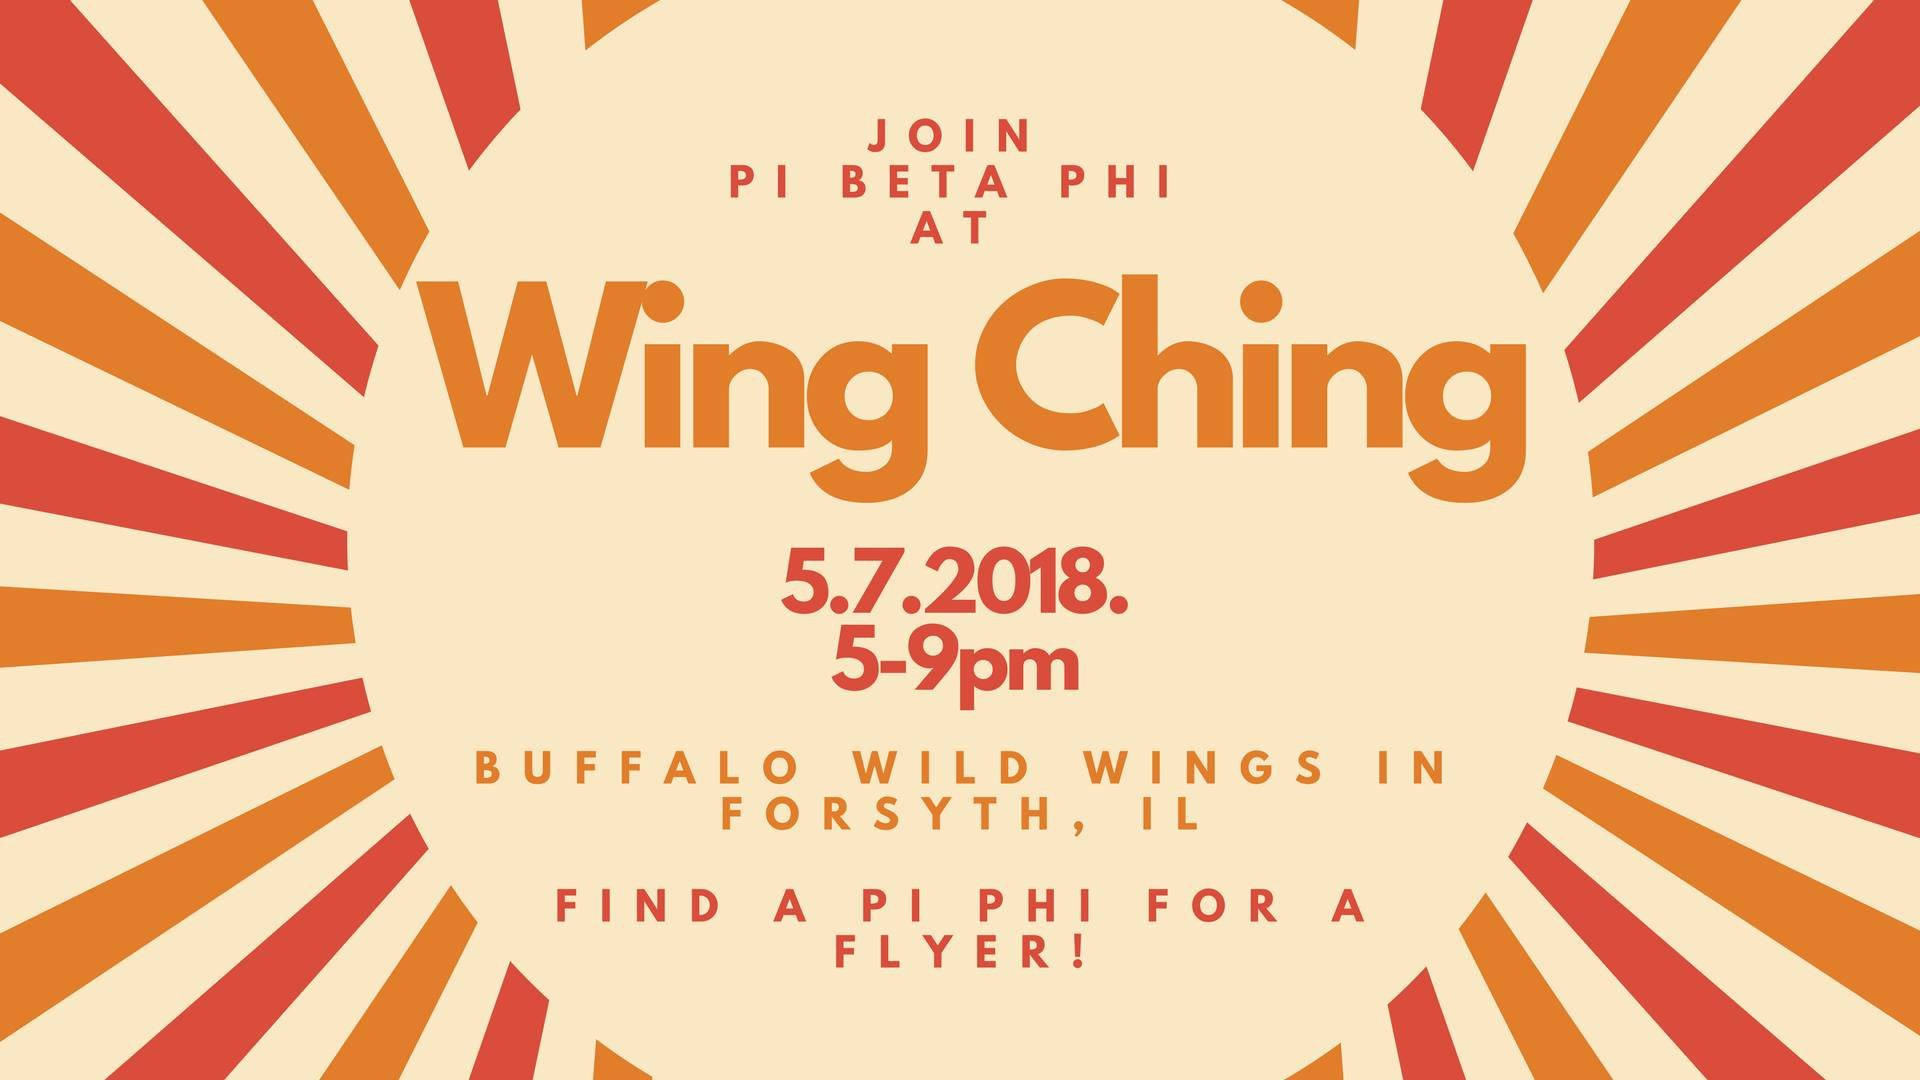 Wing Ching flier